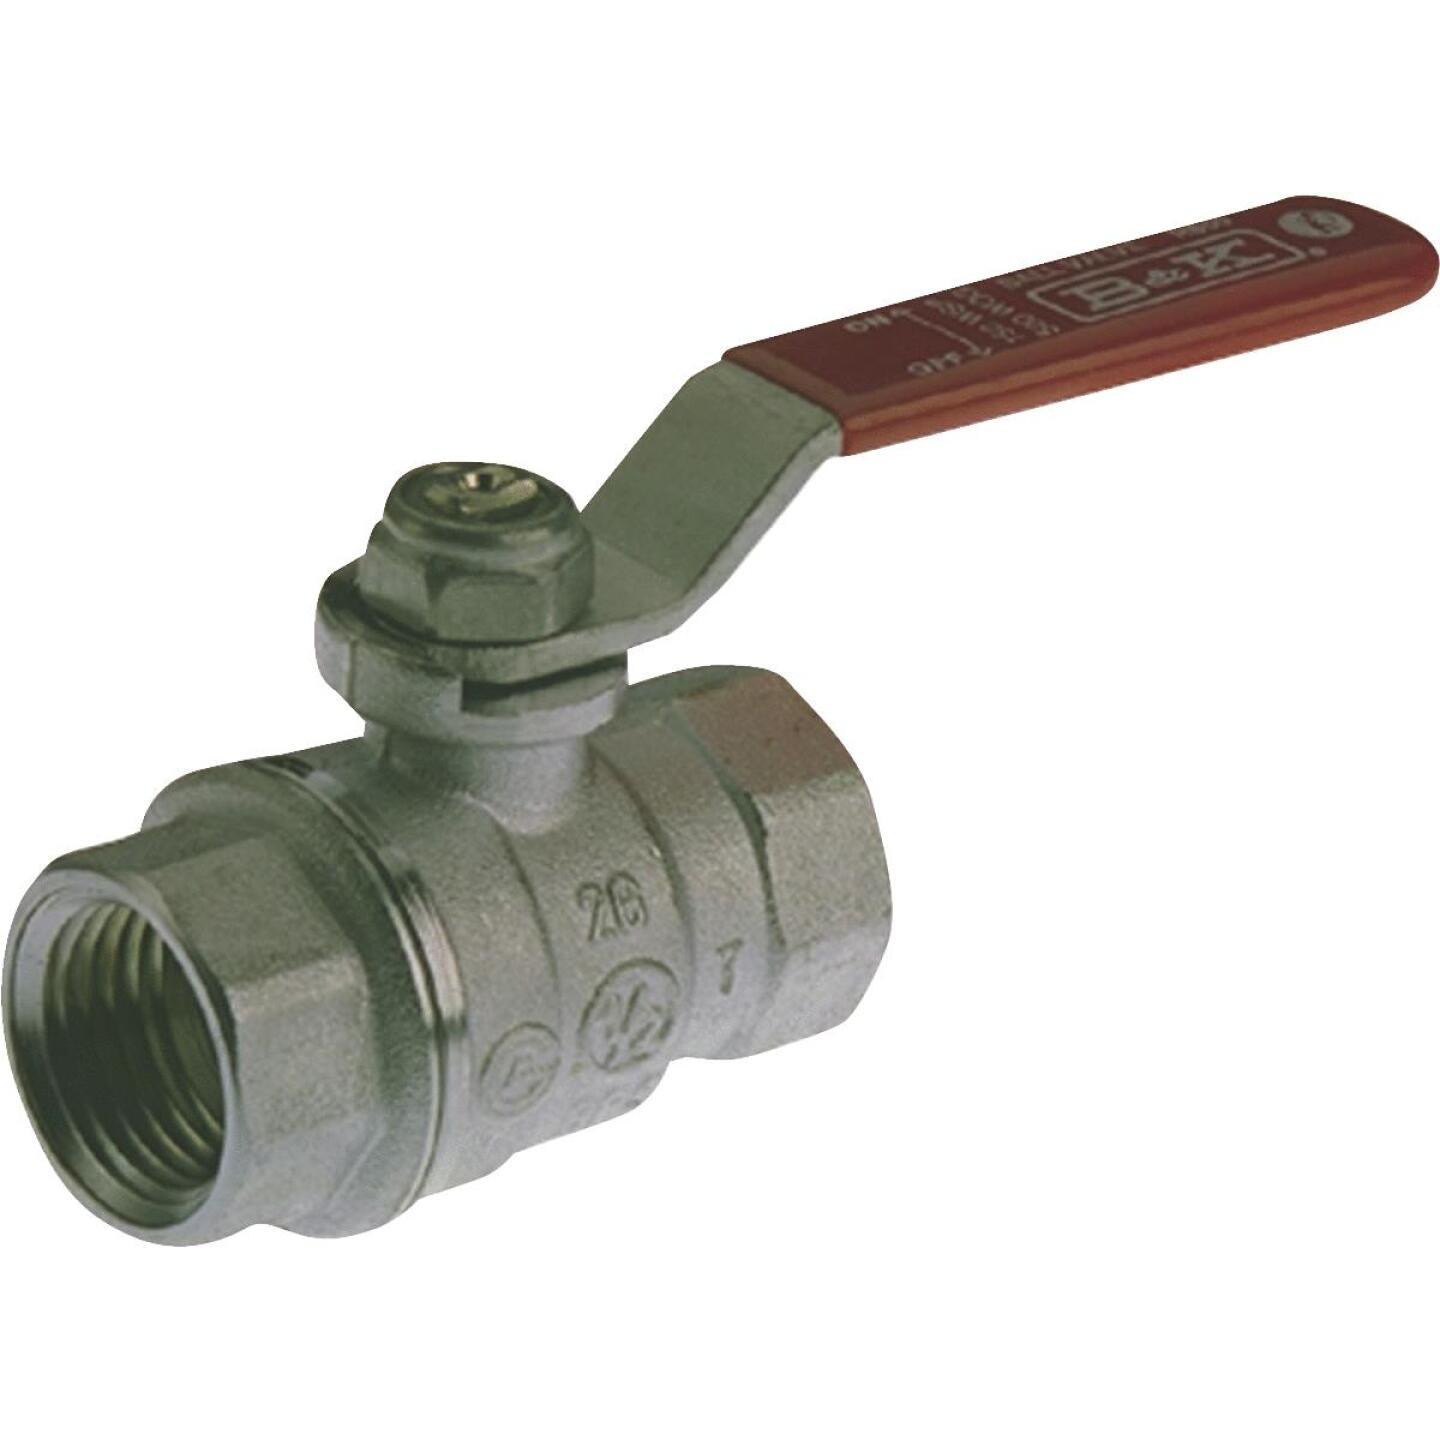 ProLine 3/4 In. FIP Fprged Brass Full Port Ball Valve Image 1